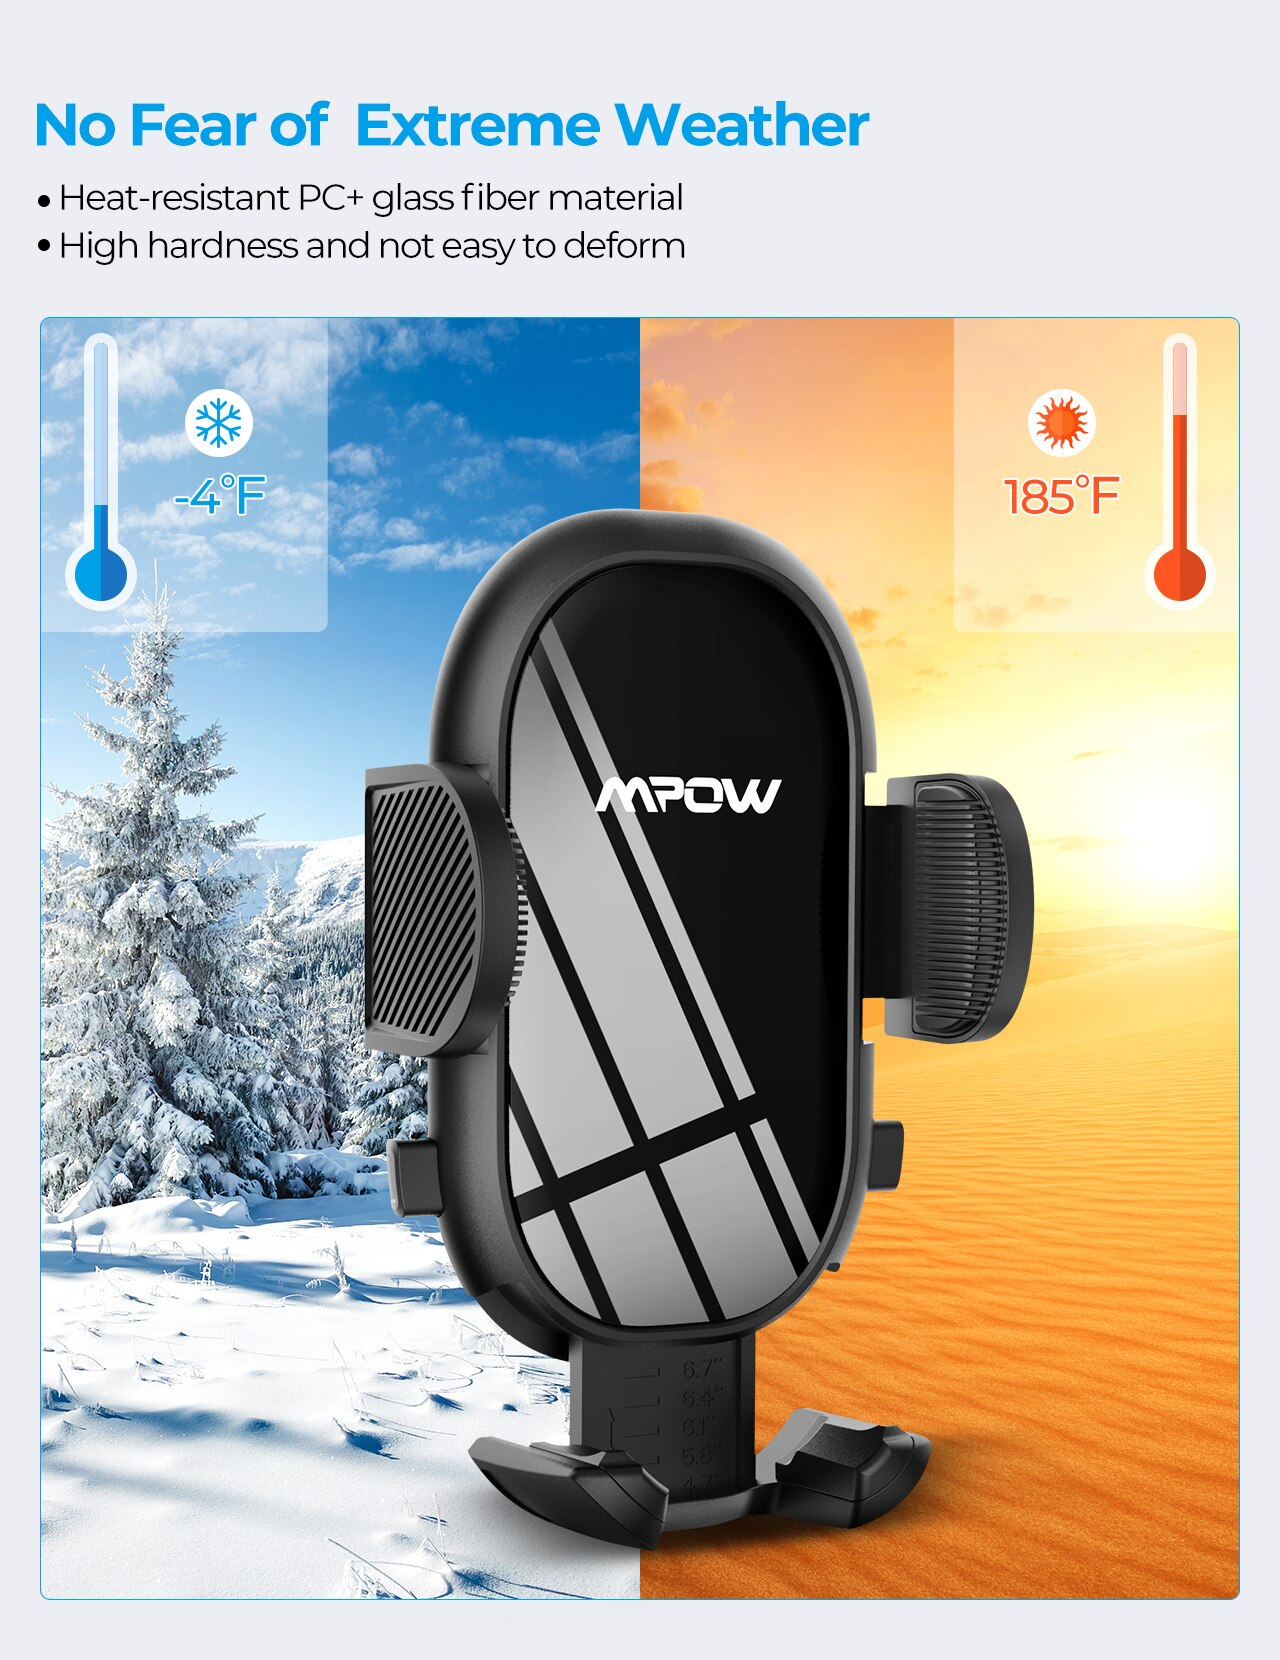 H7b0fa01ade15410ebd0576bef0e63e83u - MPOW CA163 Universal Air Vent Car Phone Mount with Stable Clip and Dual Release Button Compatible with iPhone 12 11 Pro and More